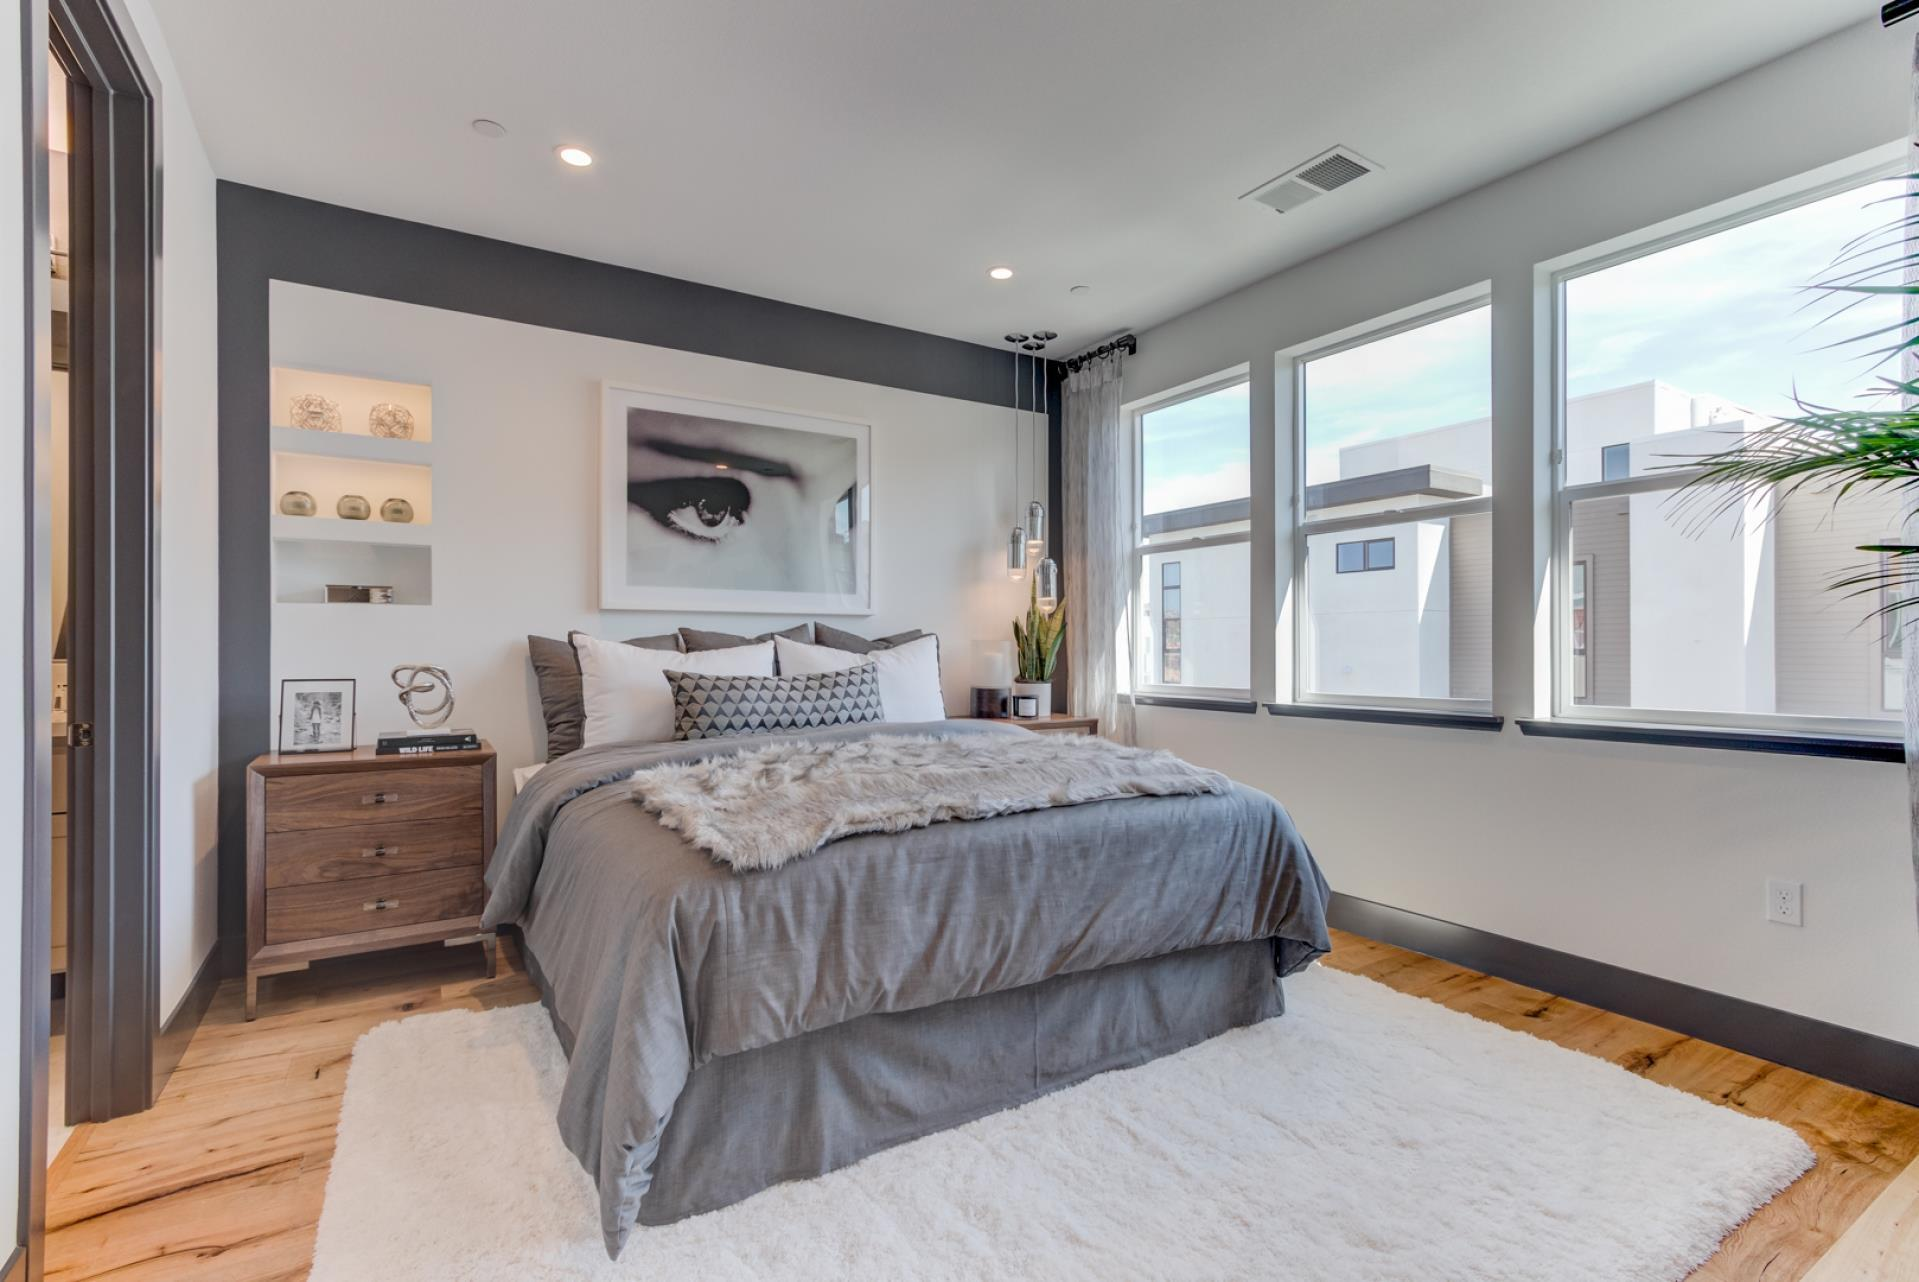 Bedroom featured in the Terraces Plan 2 By SummerHill Homes in San Jose, CA